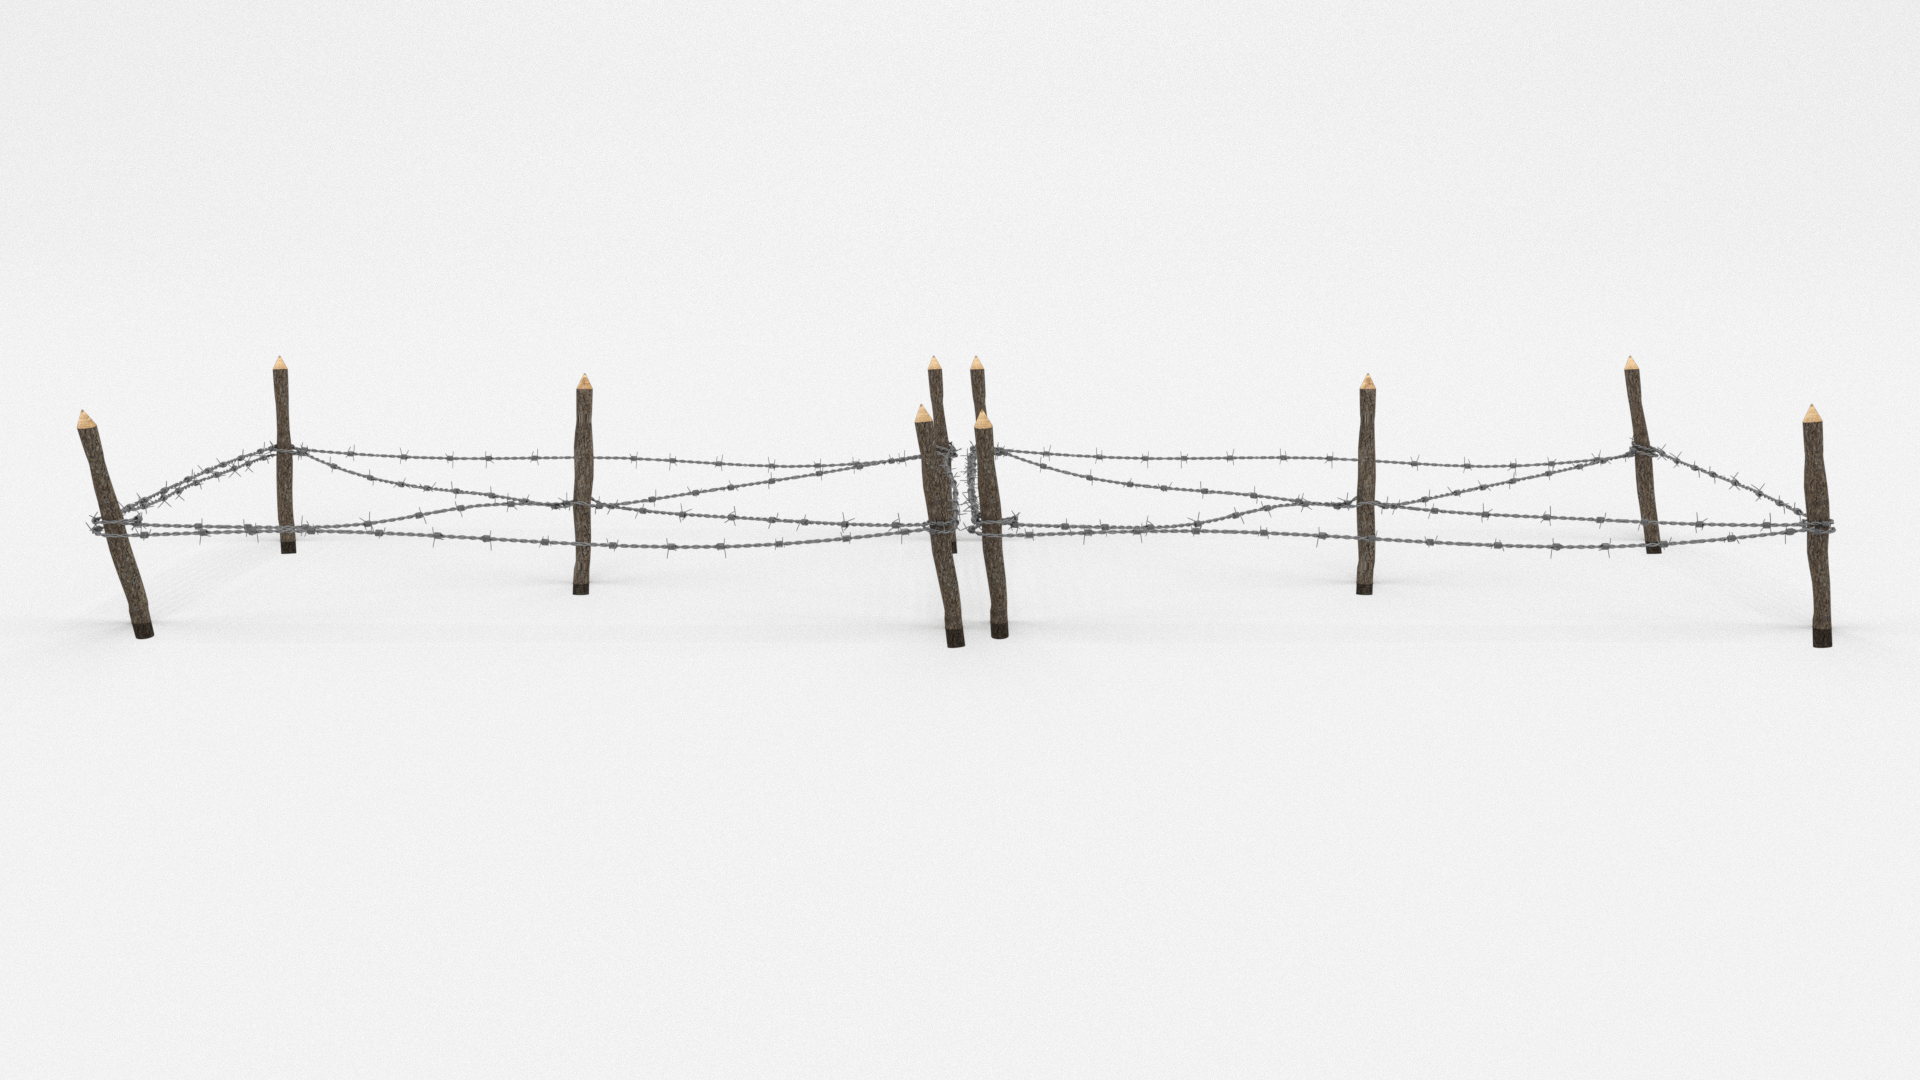 Barb Wire Obstacle 17